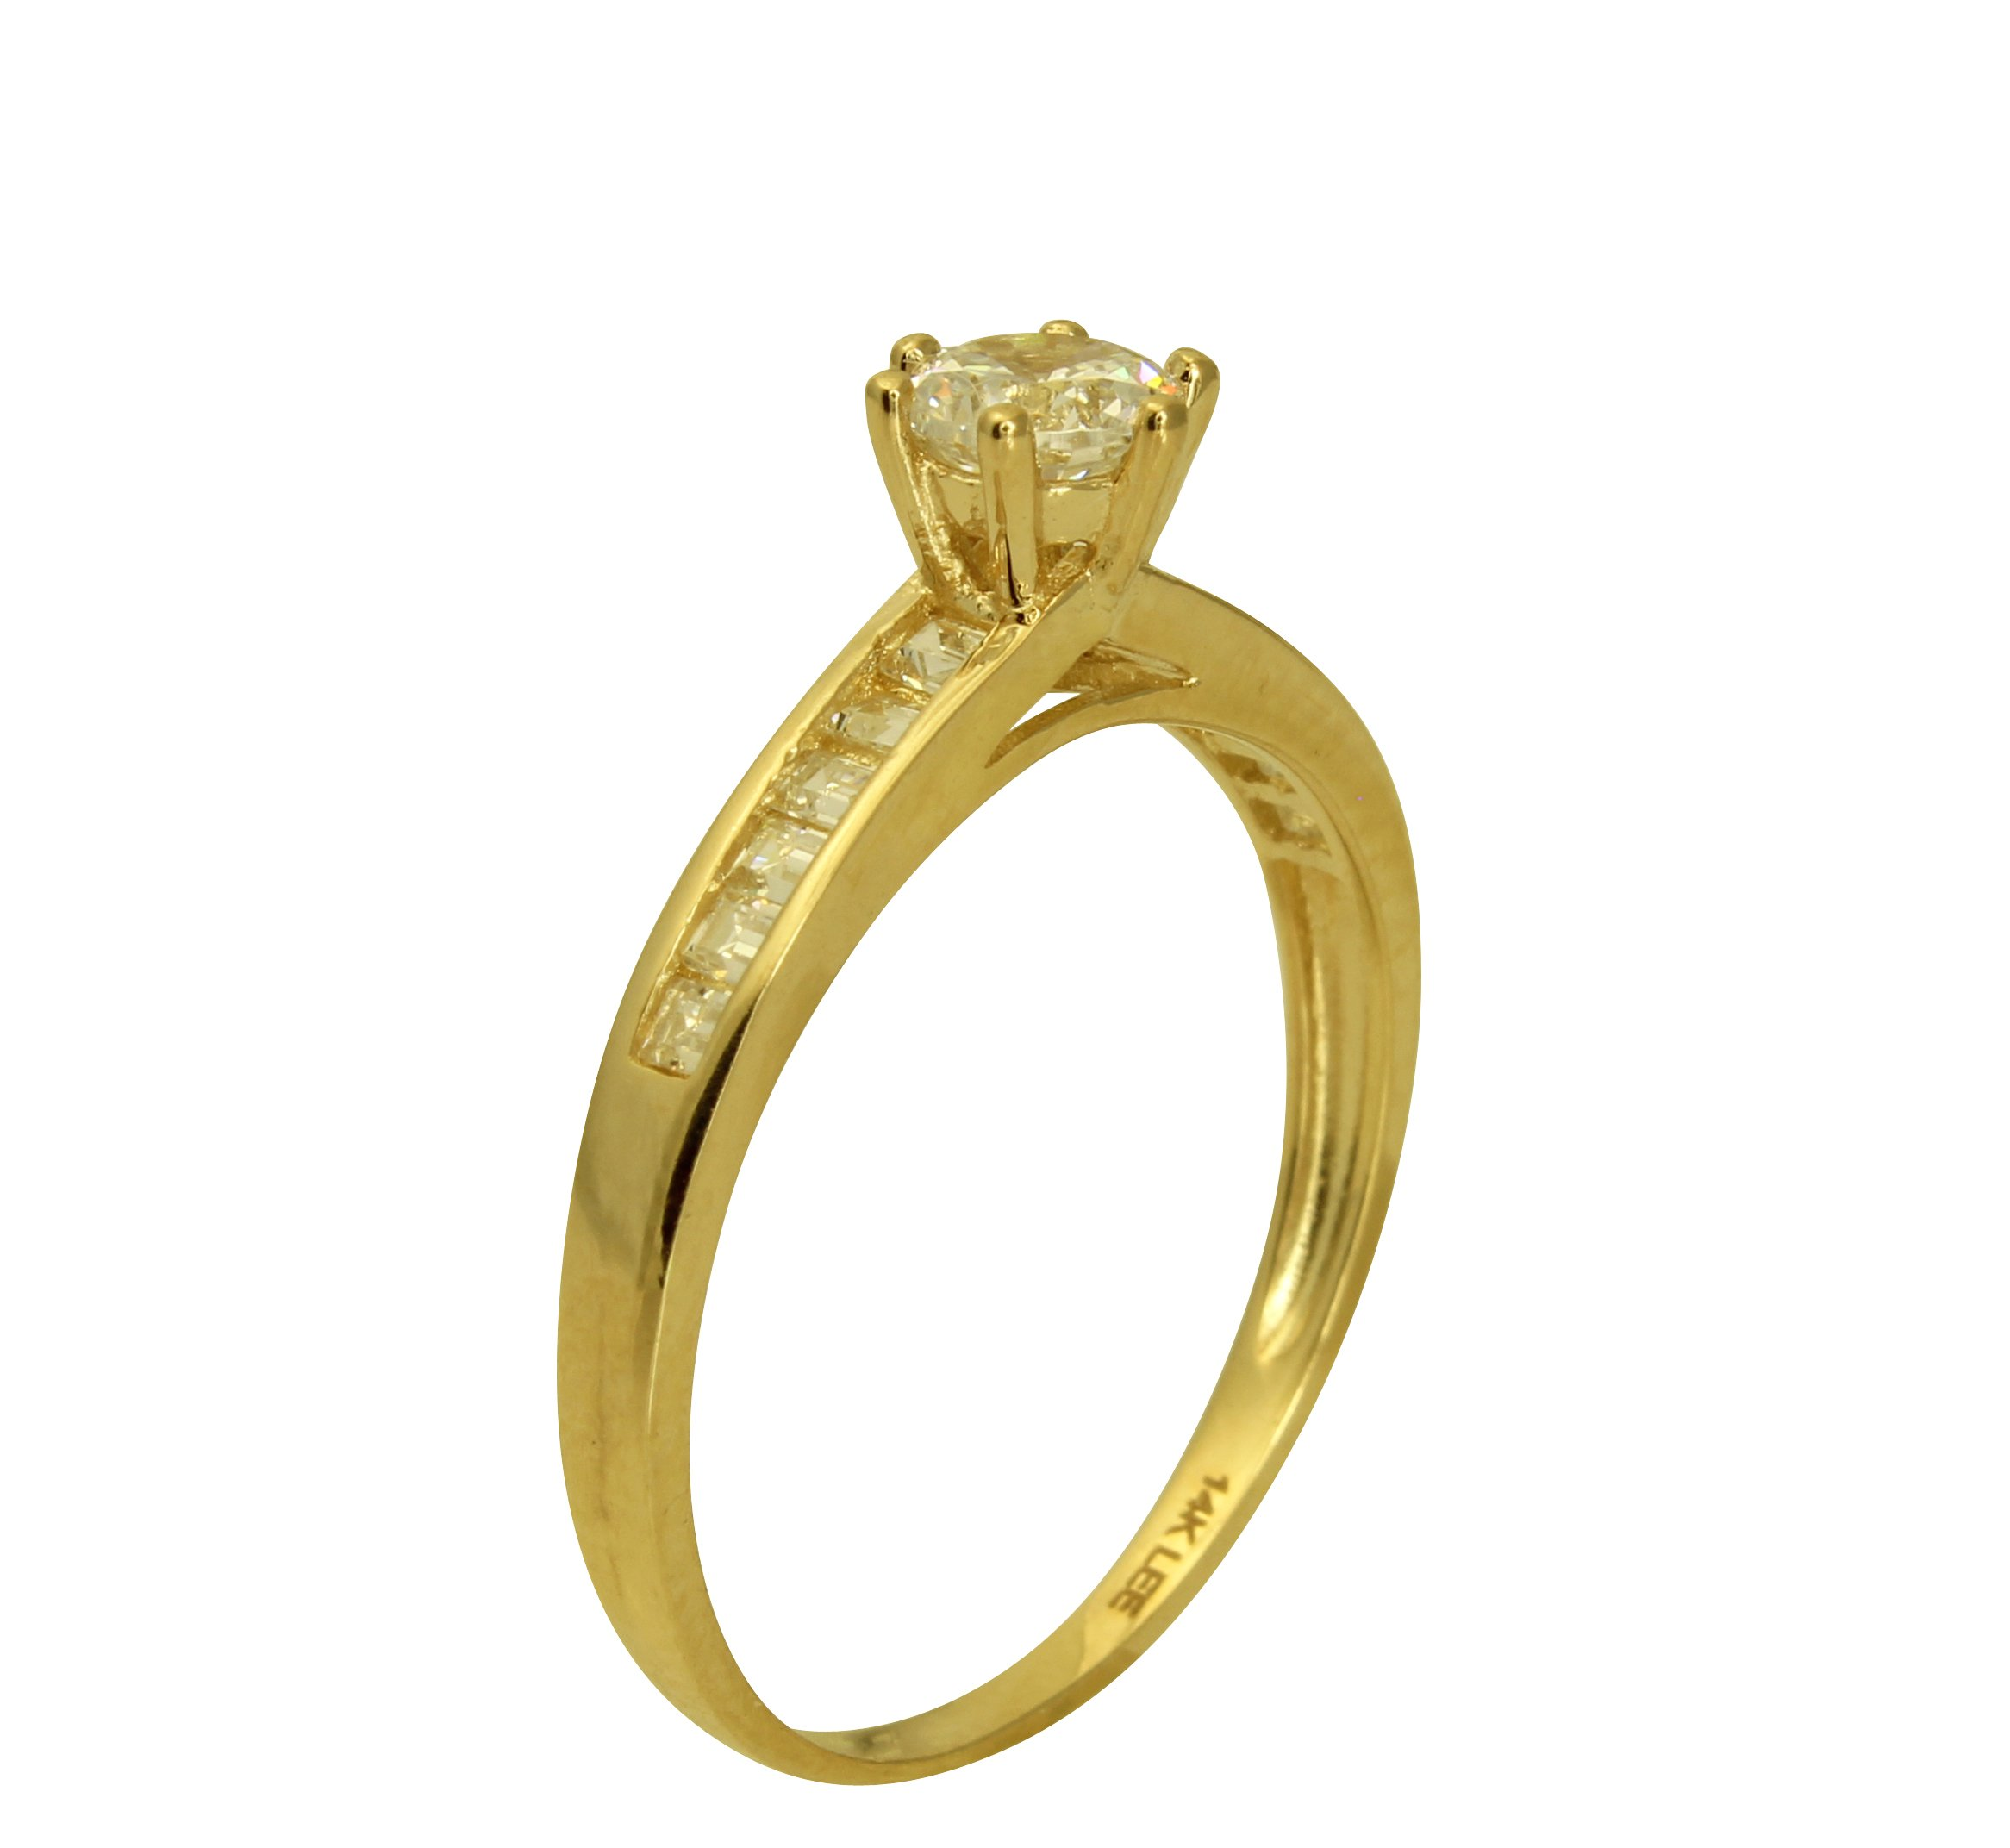 ea8ab24a23e9a 1.50 Ct 14K Real Yellow Gold Round Cut with Princess Cut Channel Set Side  Stones 6 Prong Cathedral Setting Engagement Wedding Propose Promise Ring  with ...